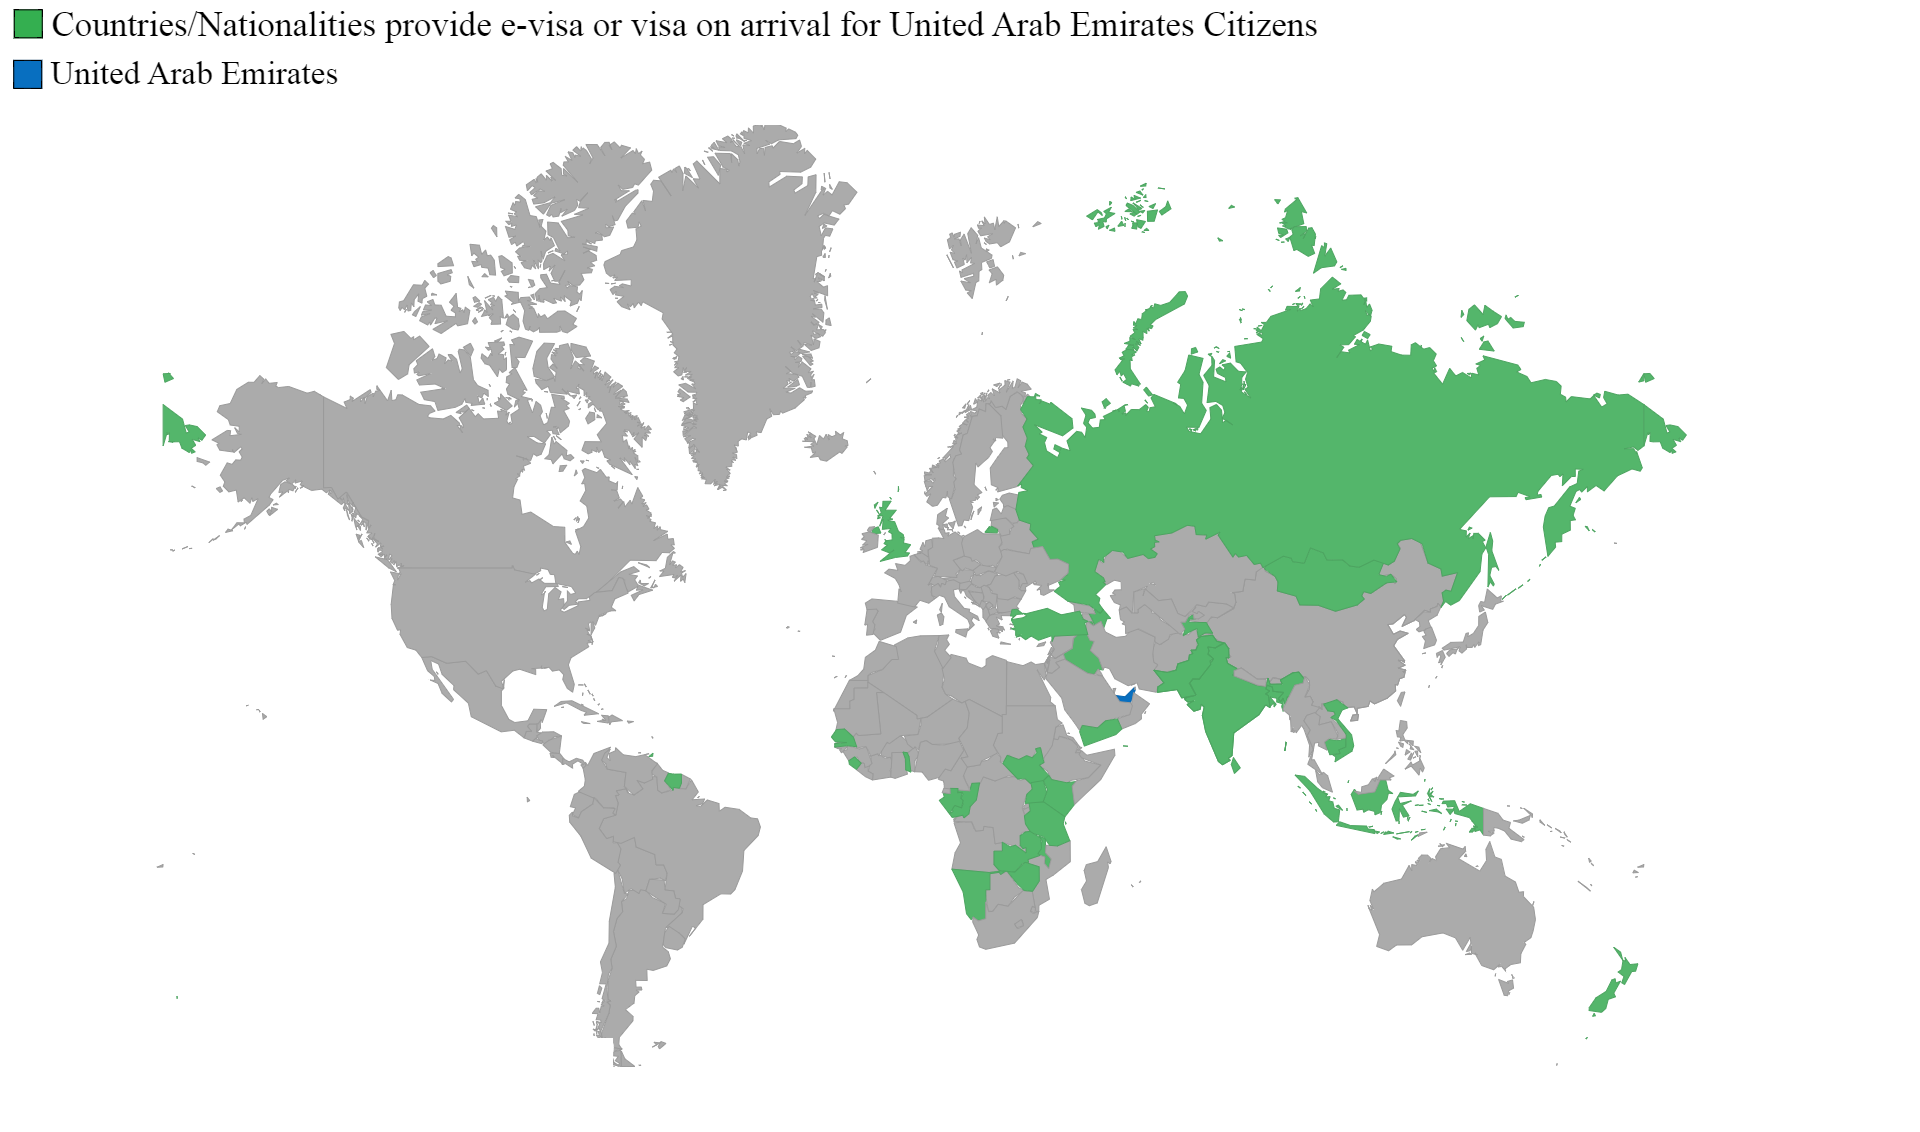 Countries can visit with e-visa or eTA